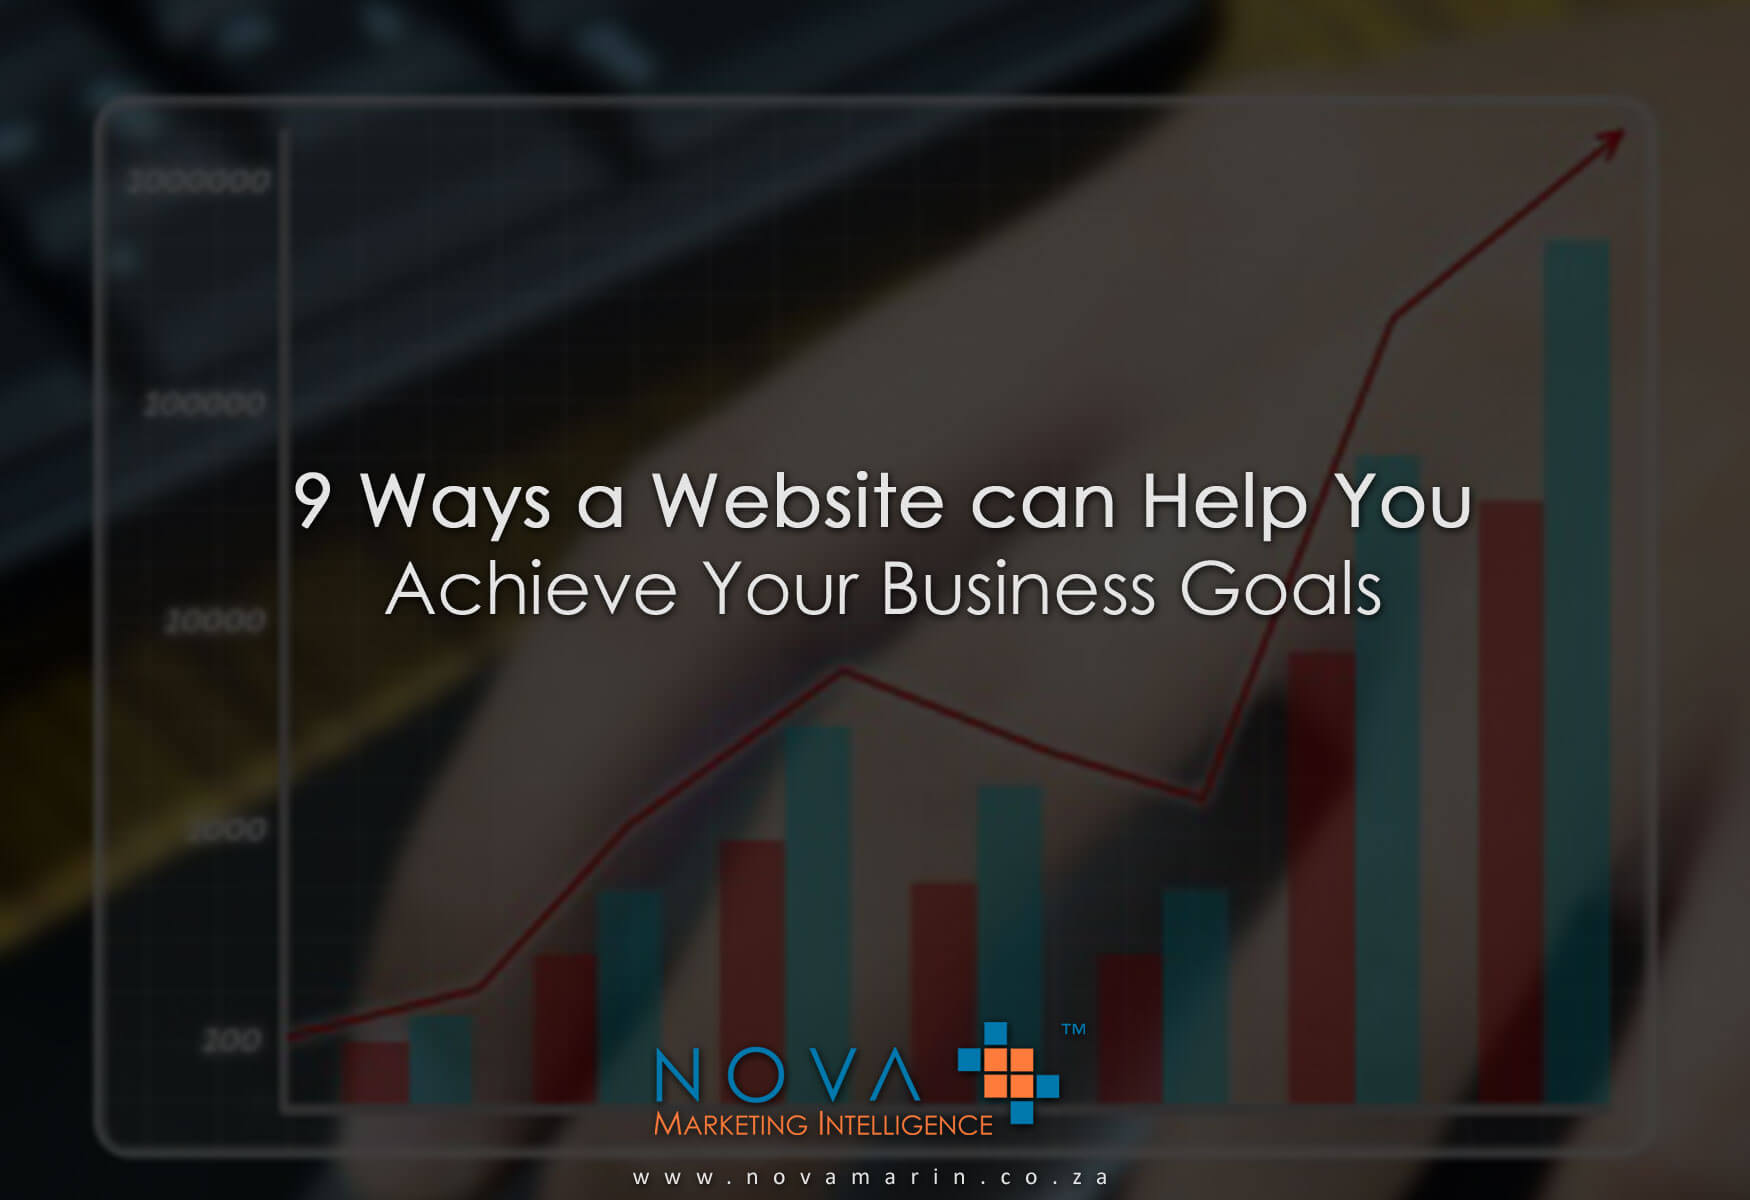 9 Ways a website can help you achieve your business goals.